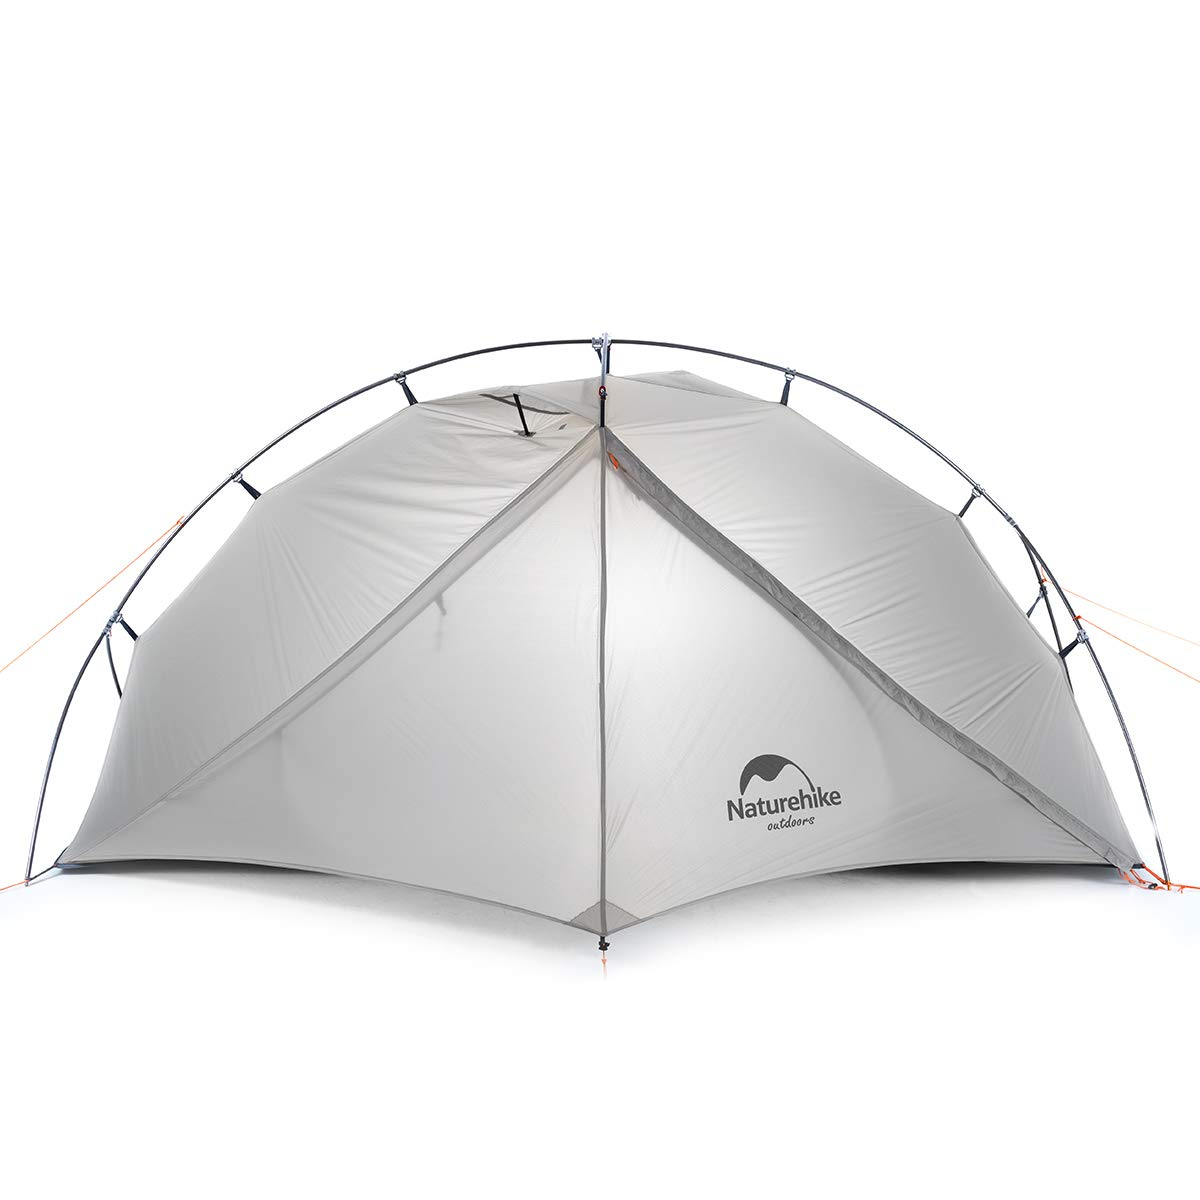 Naturehike 1 and 2 Person Ultralight Backpacking Tents with Footprint 2.45//2.7 lbs Lightest Portable Tent for Camping Hiking with Carry Bag